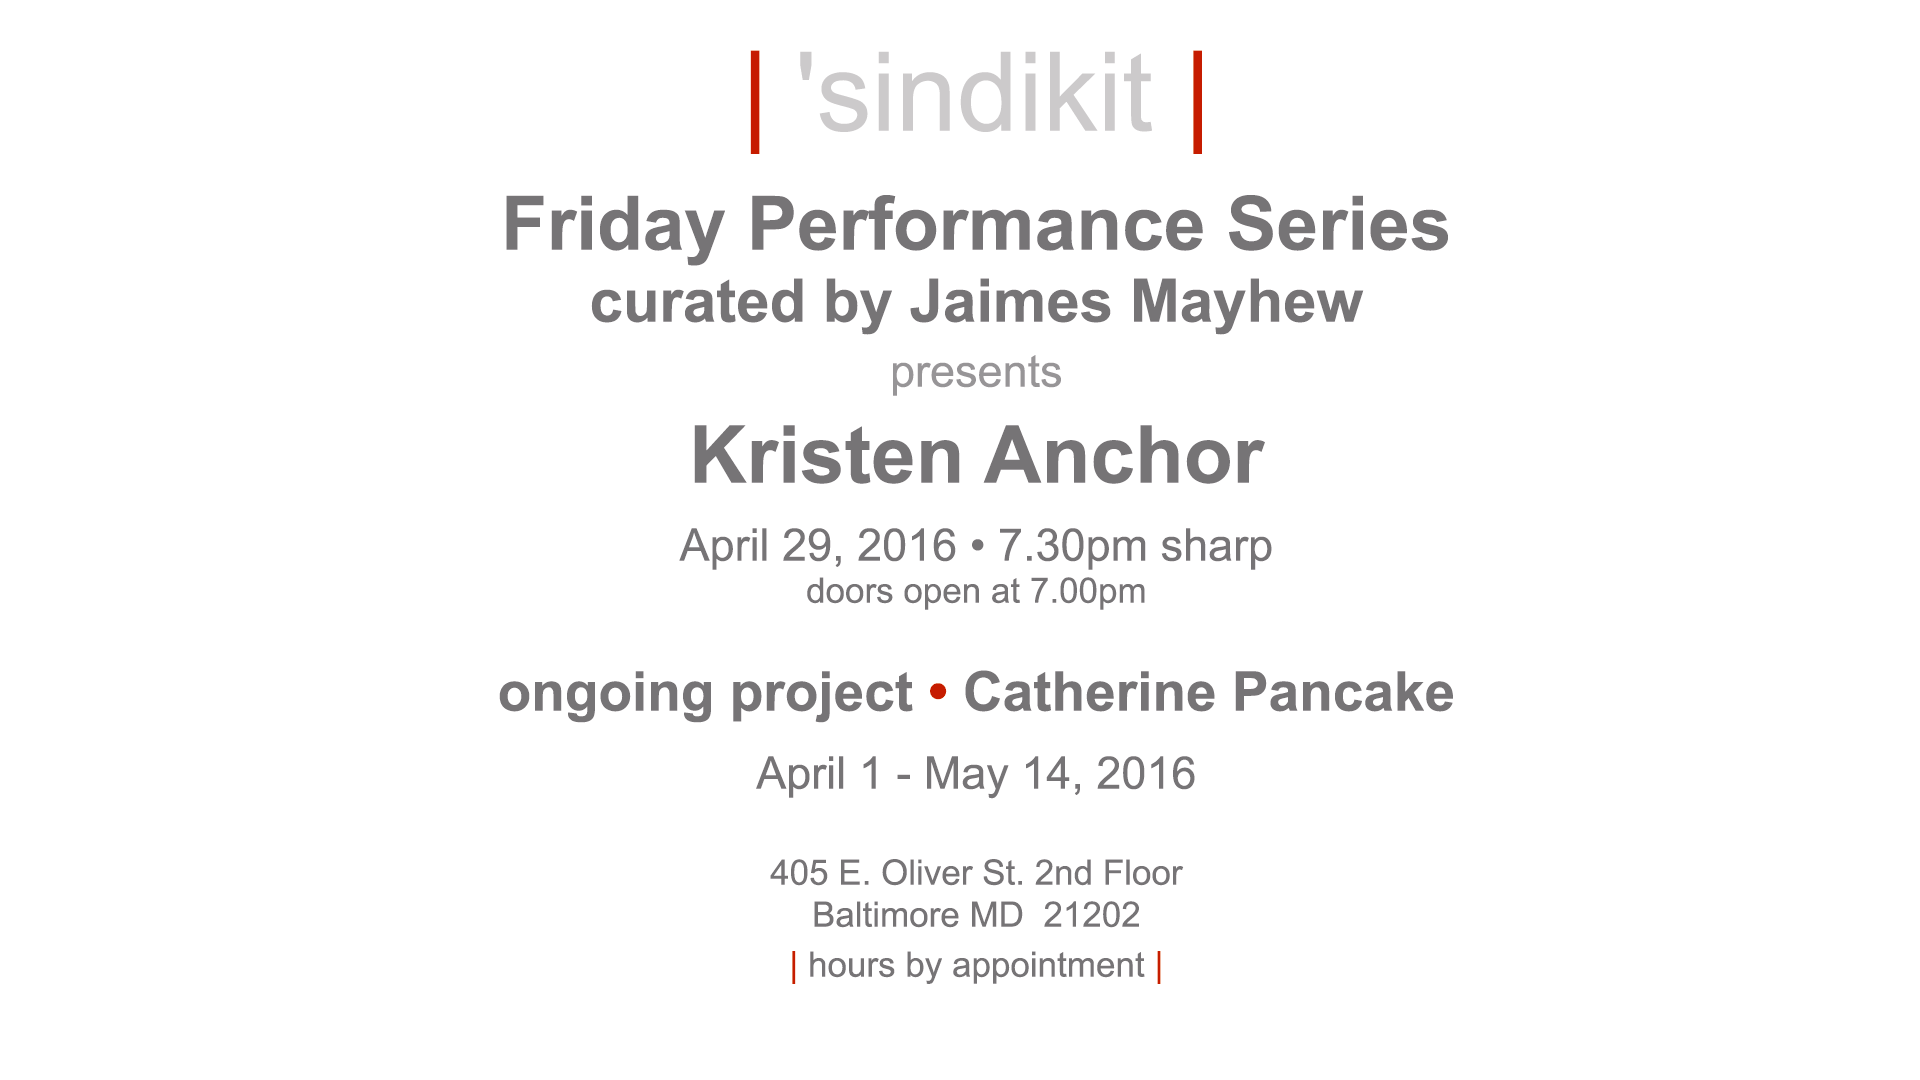 Kristen-at-Sindikit.png